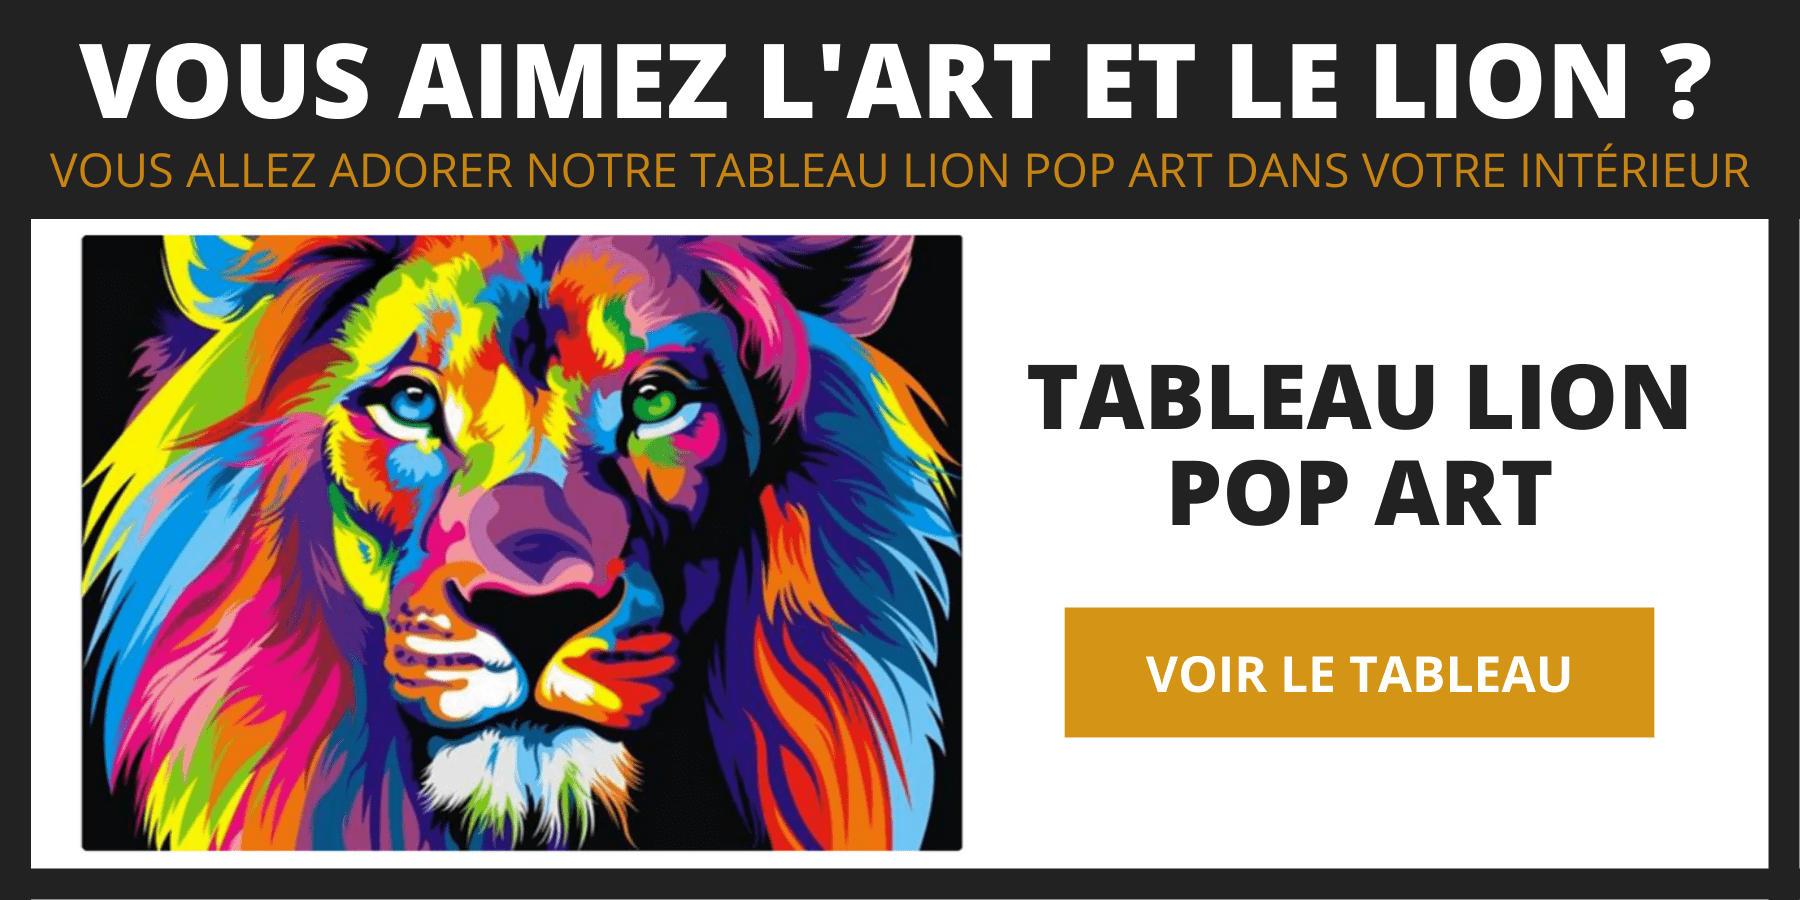 Tableau lion pop art.